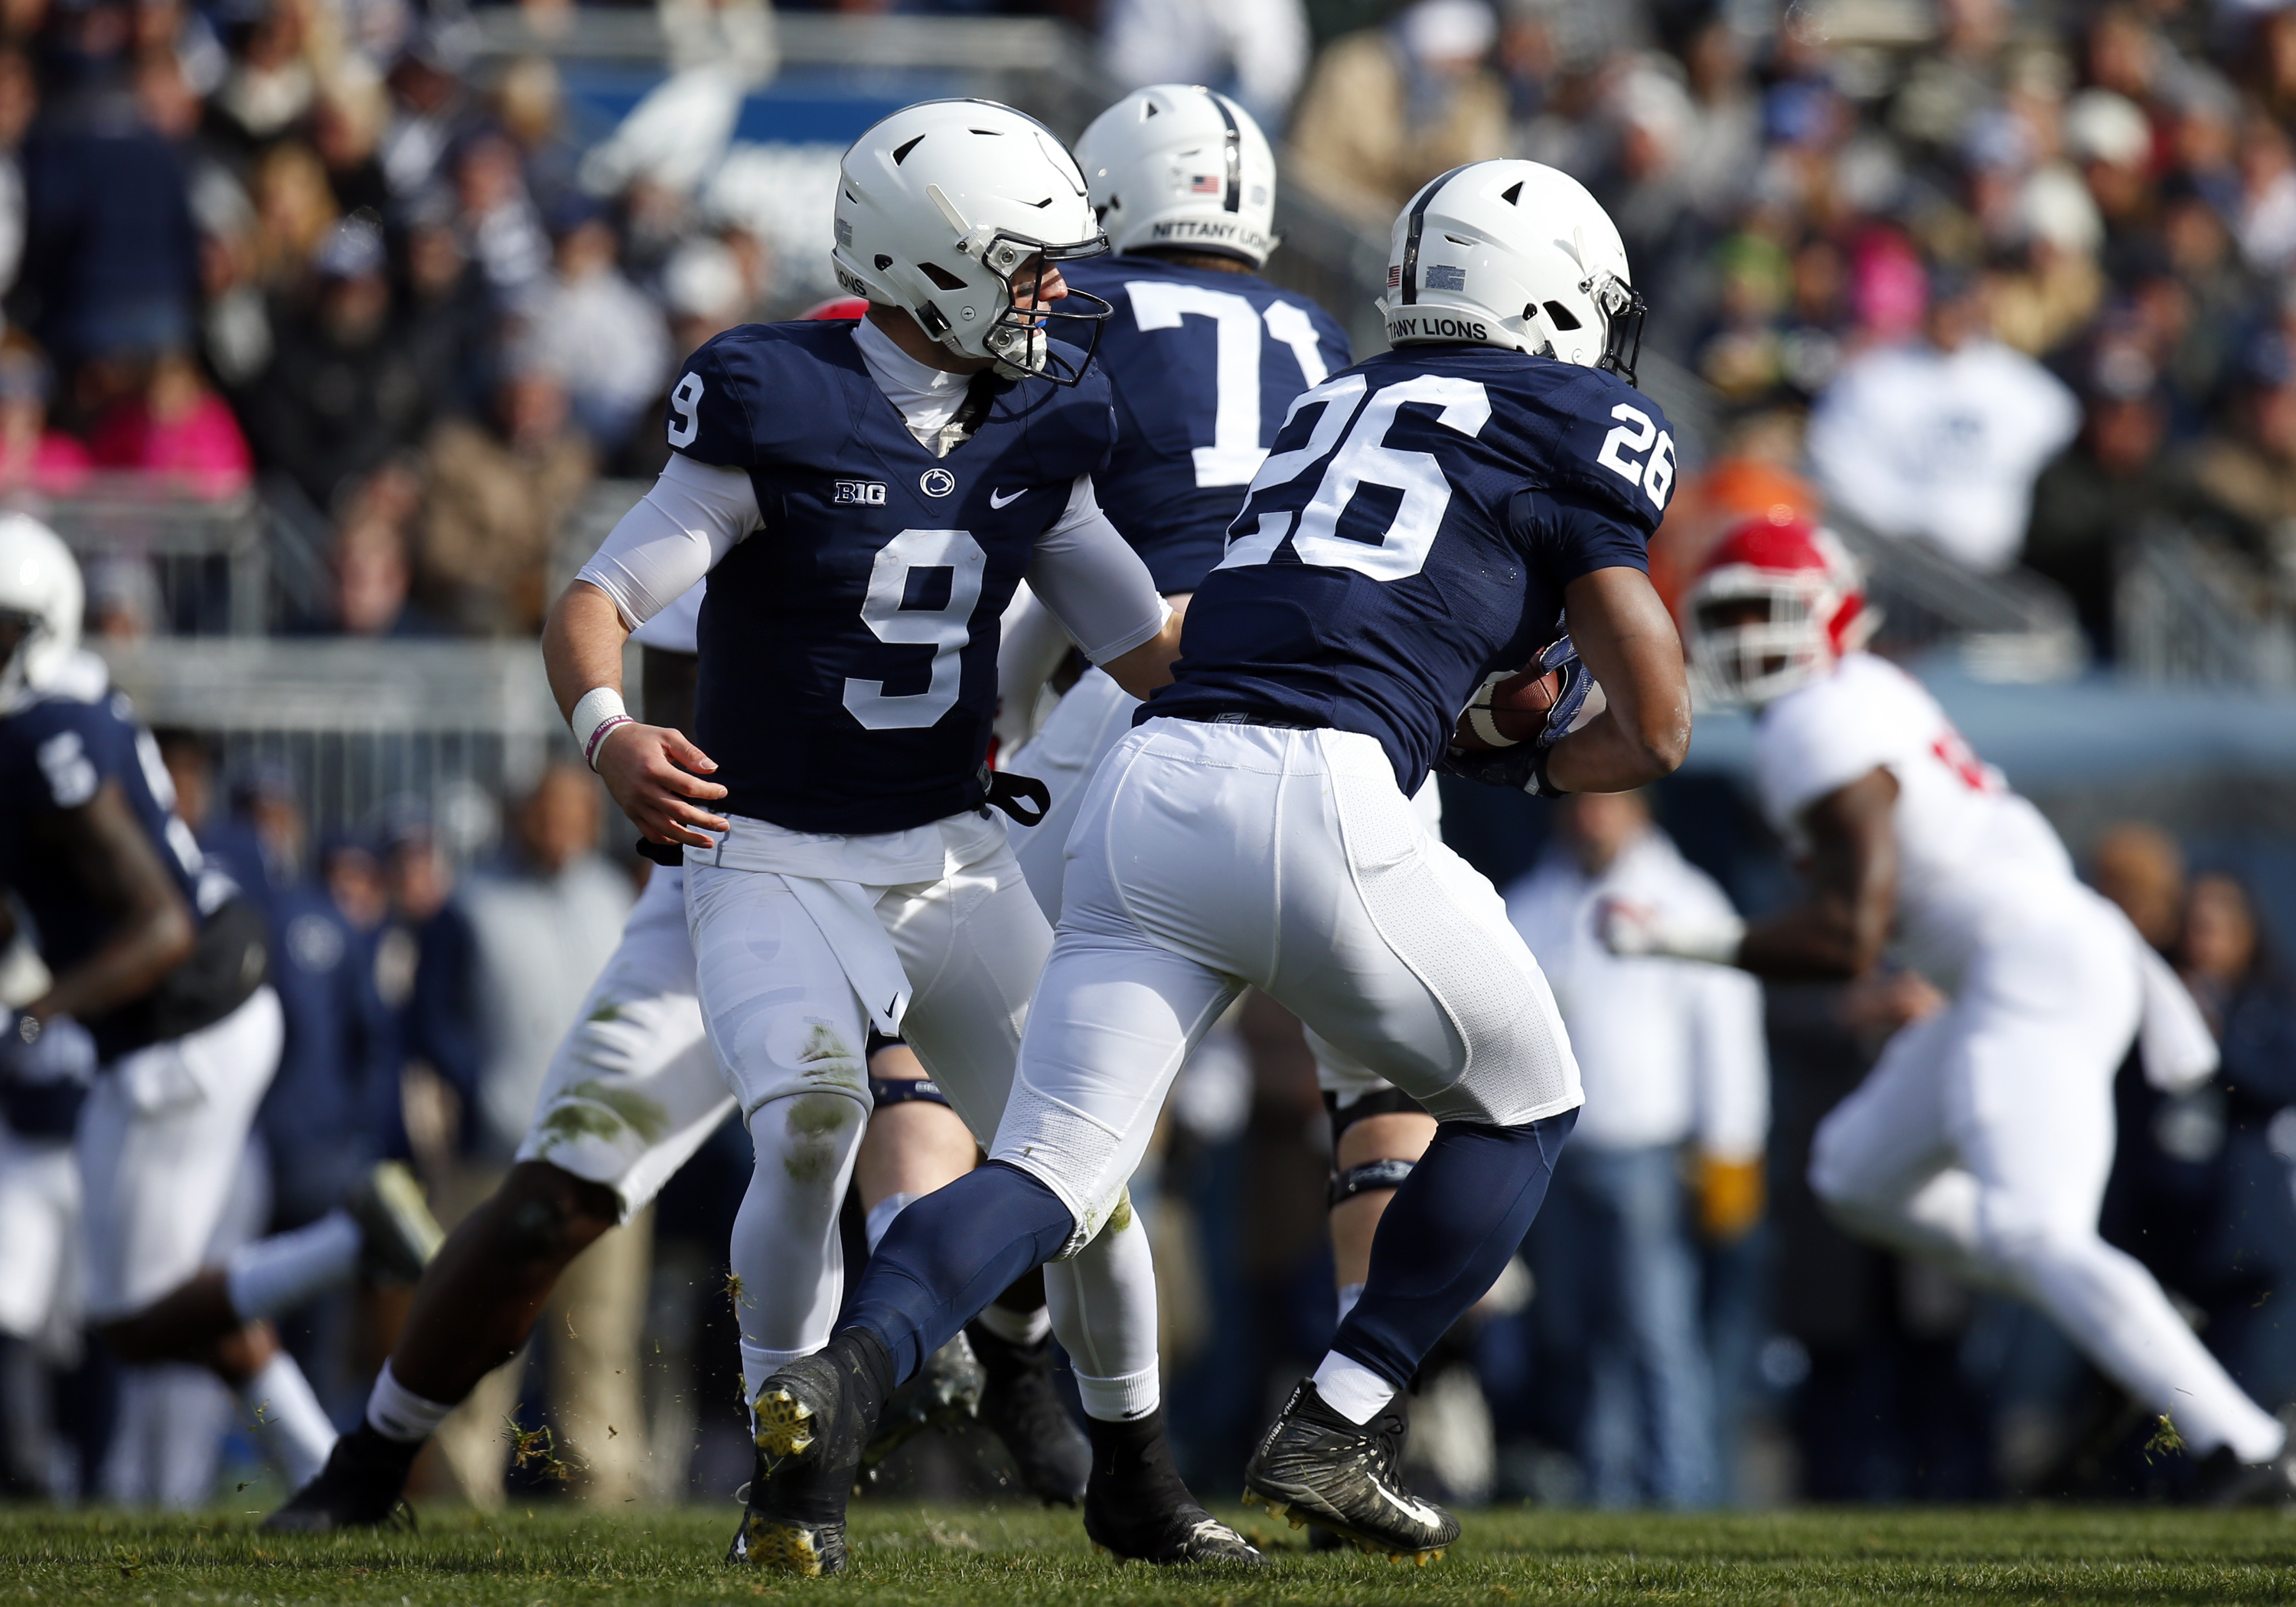 Penn St.'s Barkley pushes National Football League call to after bowl